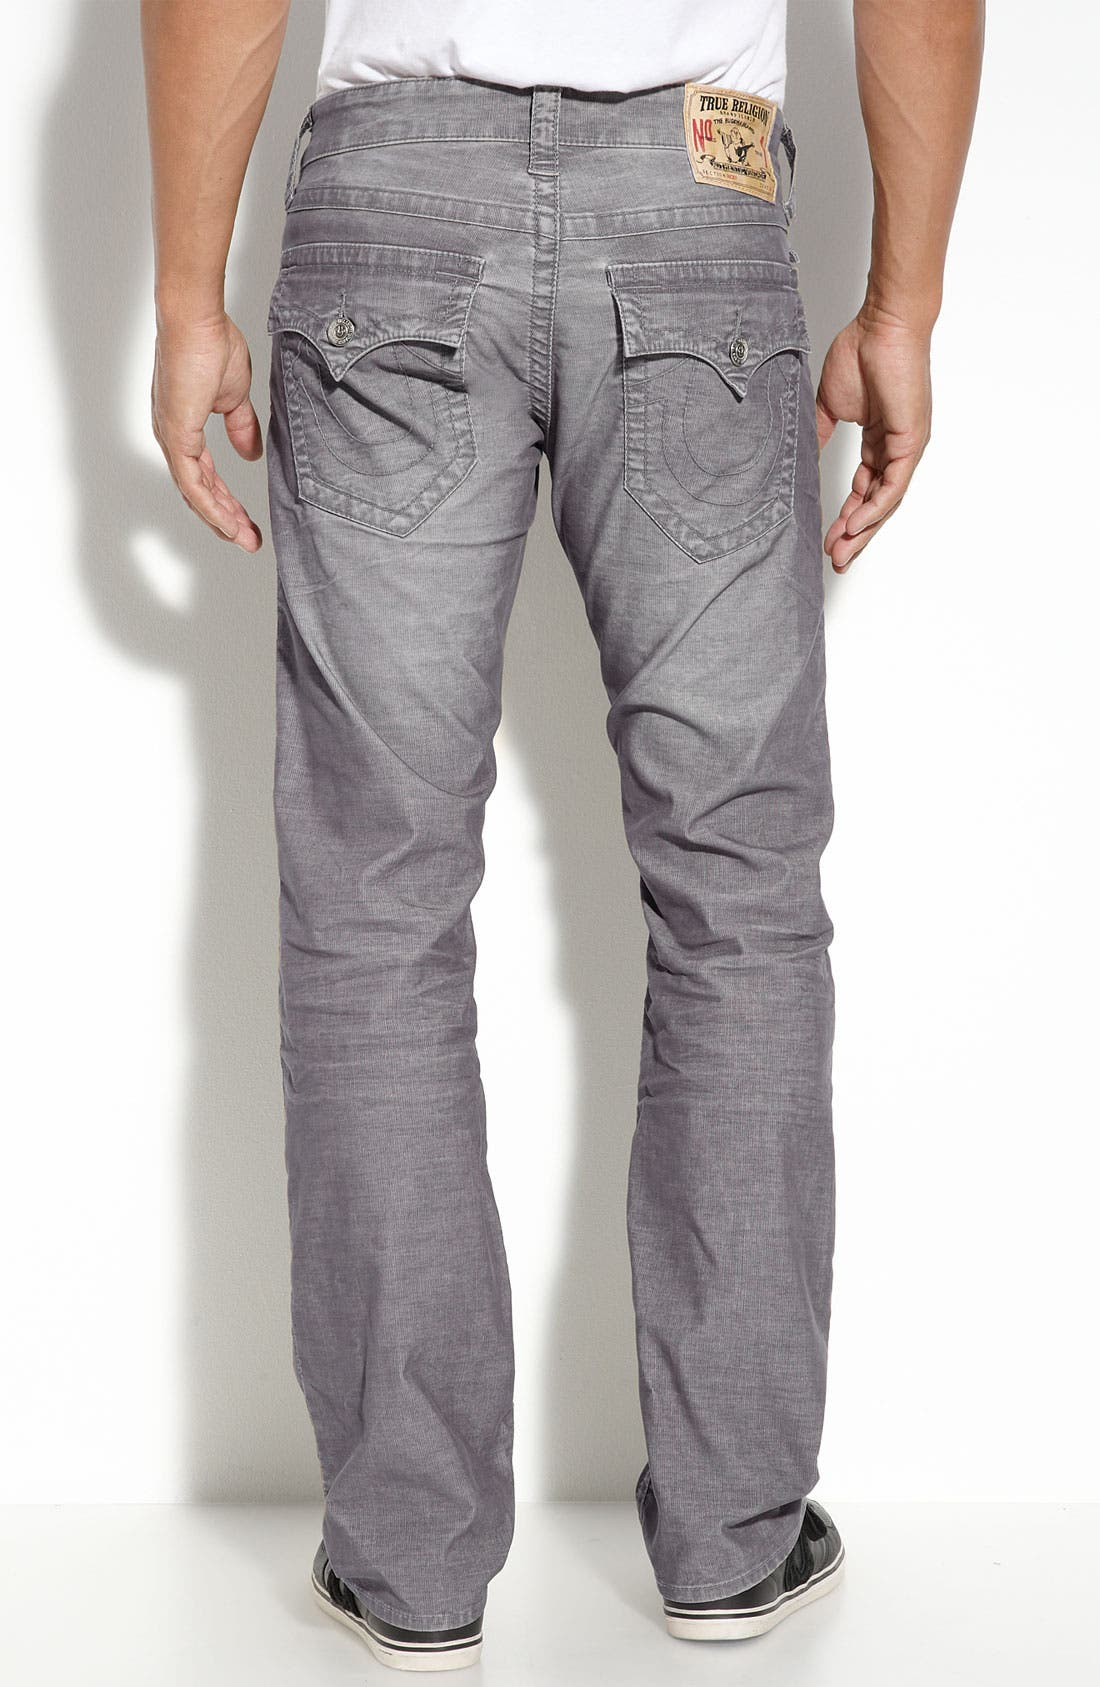 Alternate Image 1 Selected - True Religion Brand Jeans 'Ricky' Straight Leg Corduroy Pants (Online Only)